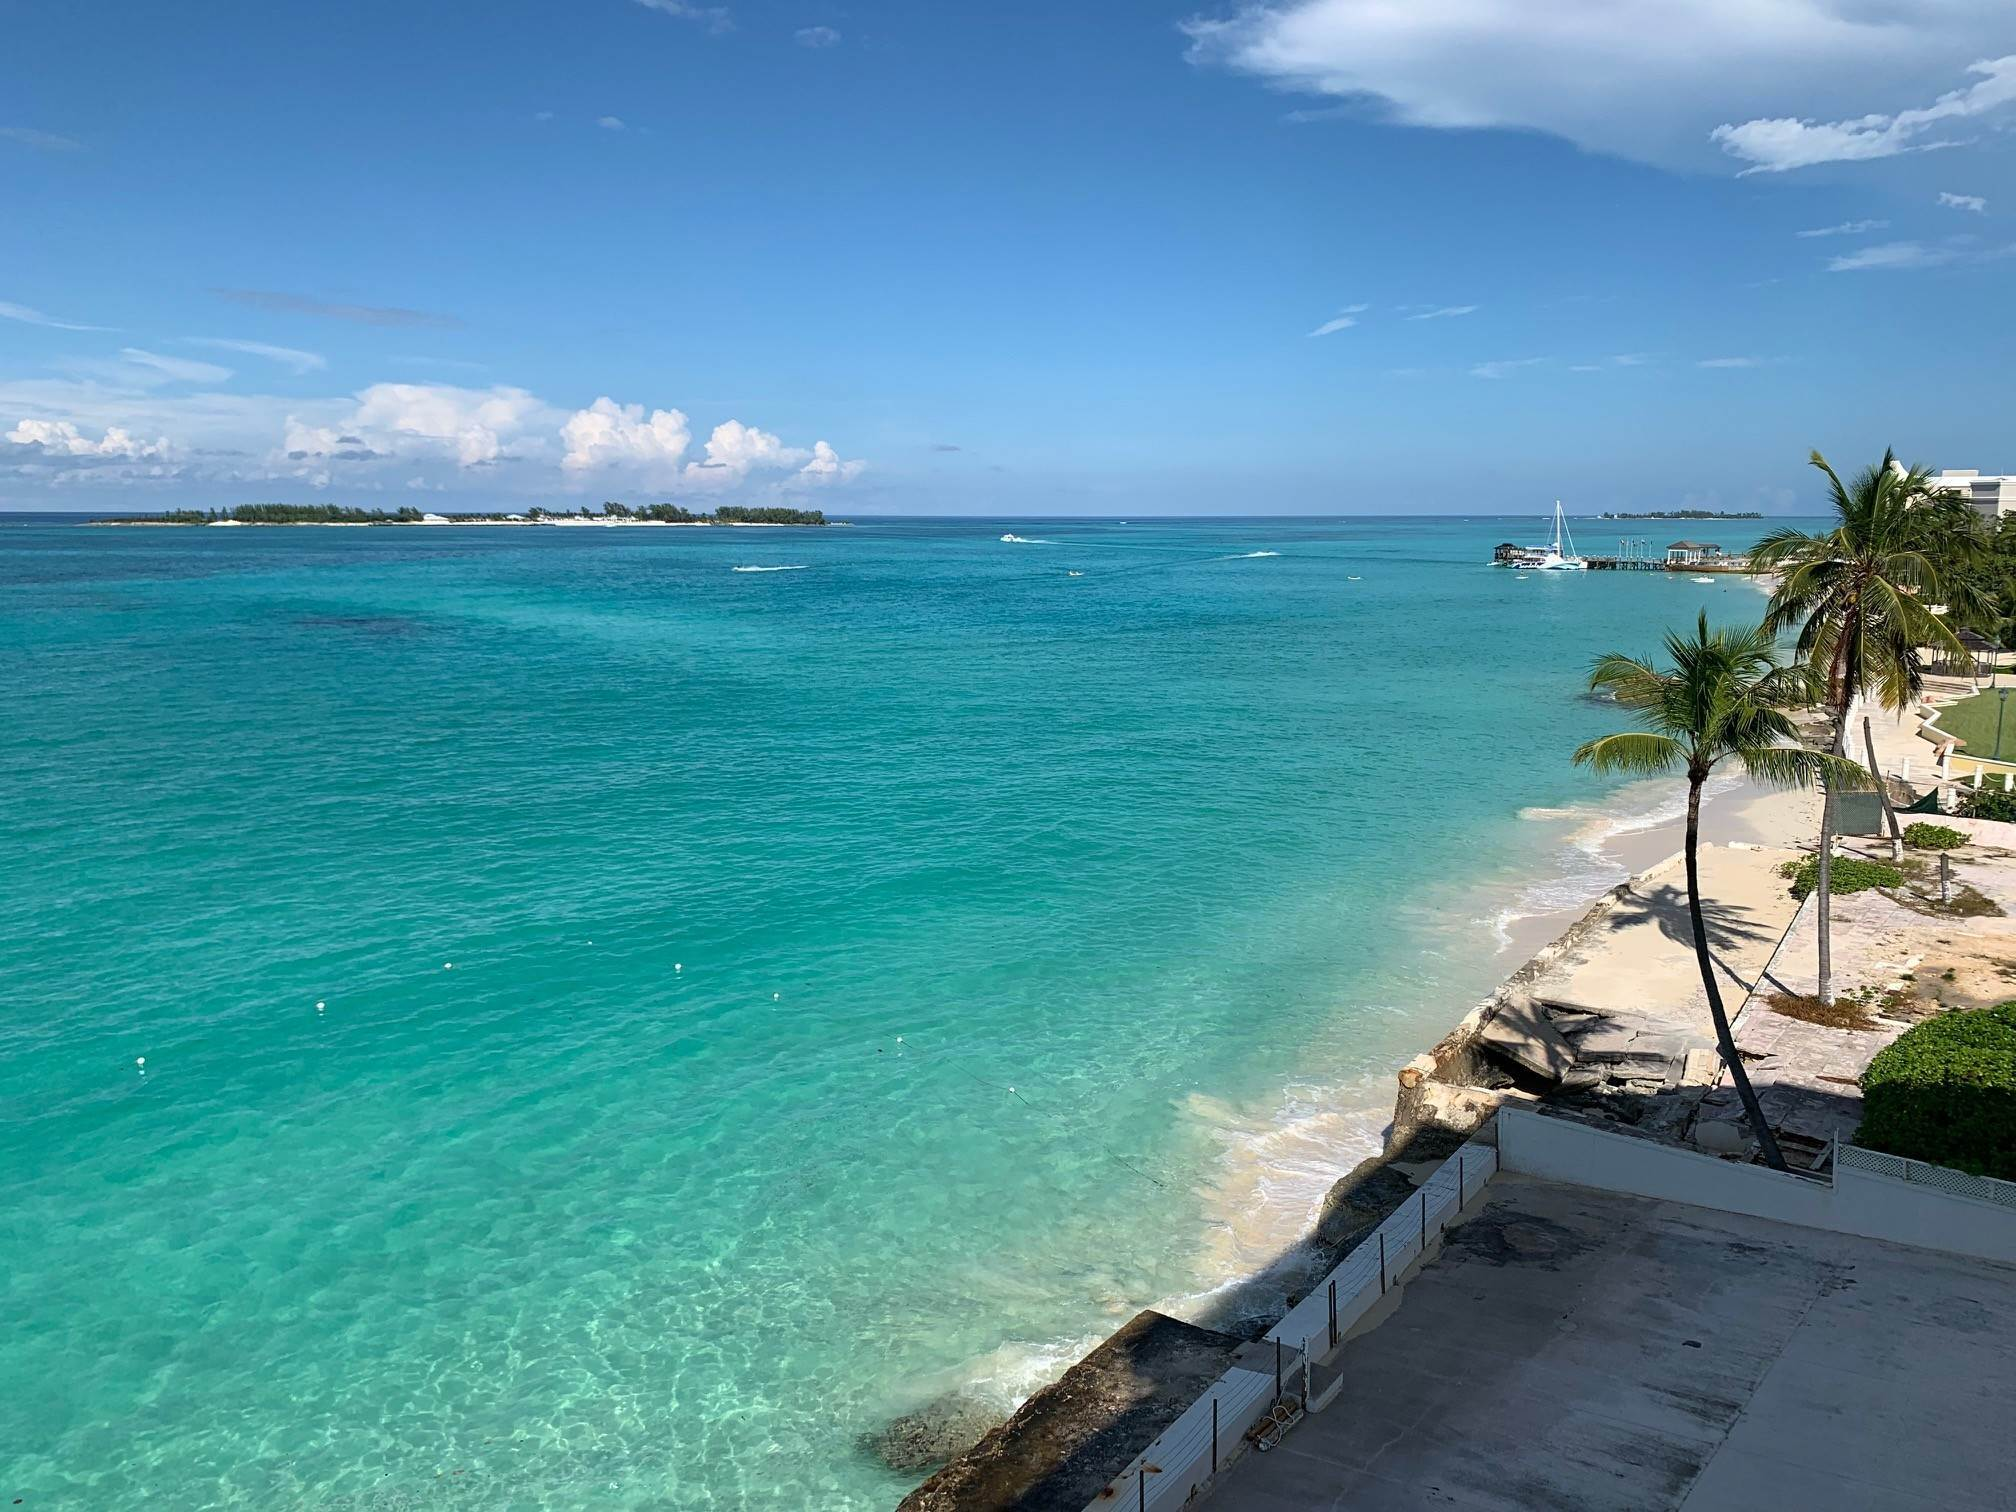 Co-op / Condo for Rent at Turnkey Contemporary Ocean View Condo in Conchrest Conchrest, Cable Beach, Nassau And Paradise Island Bahamas